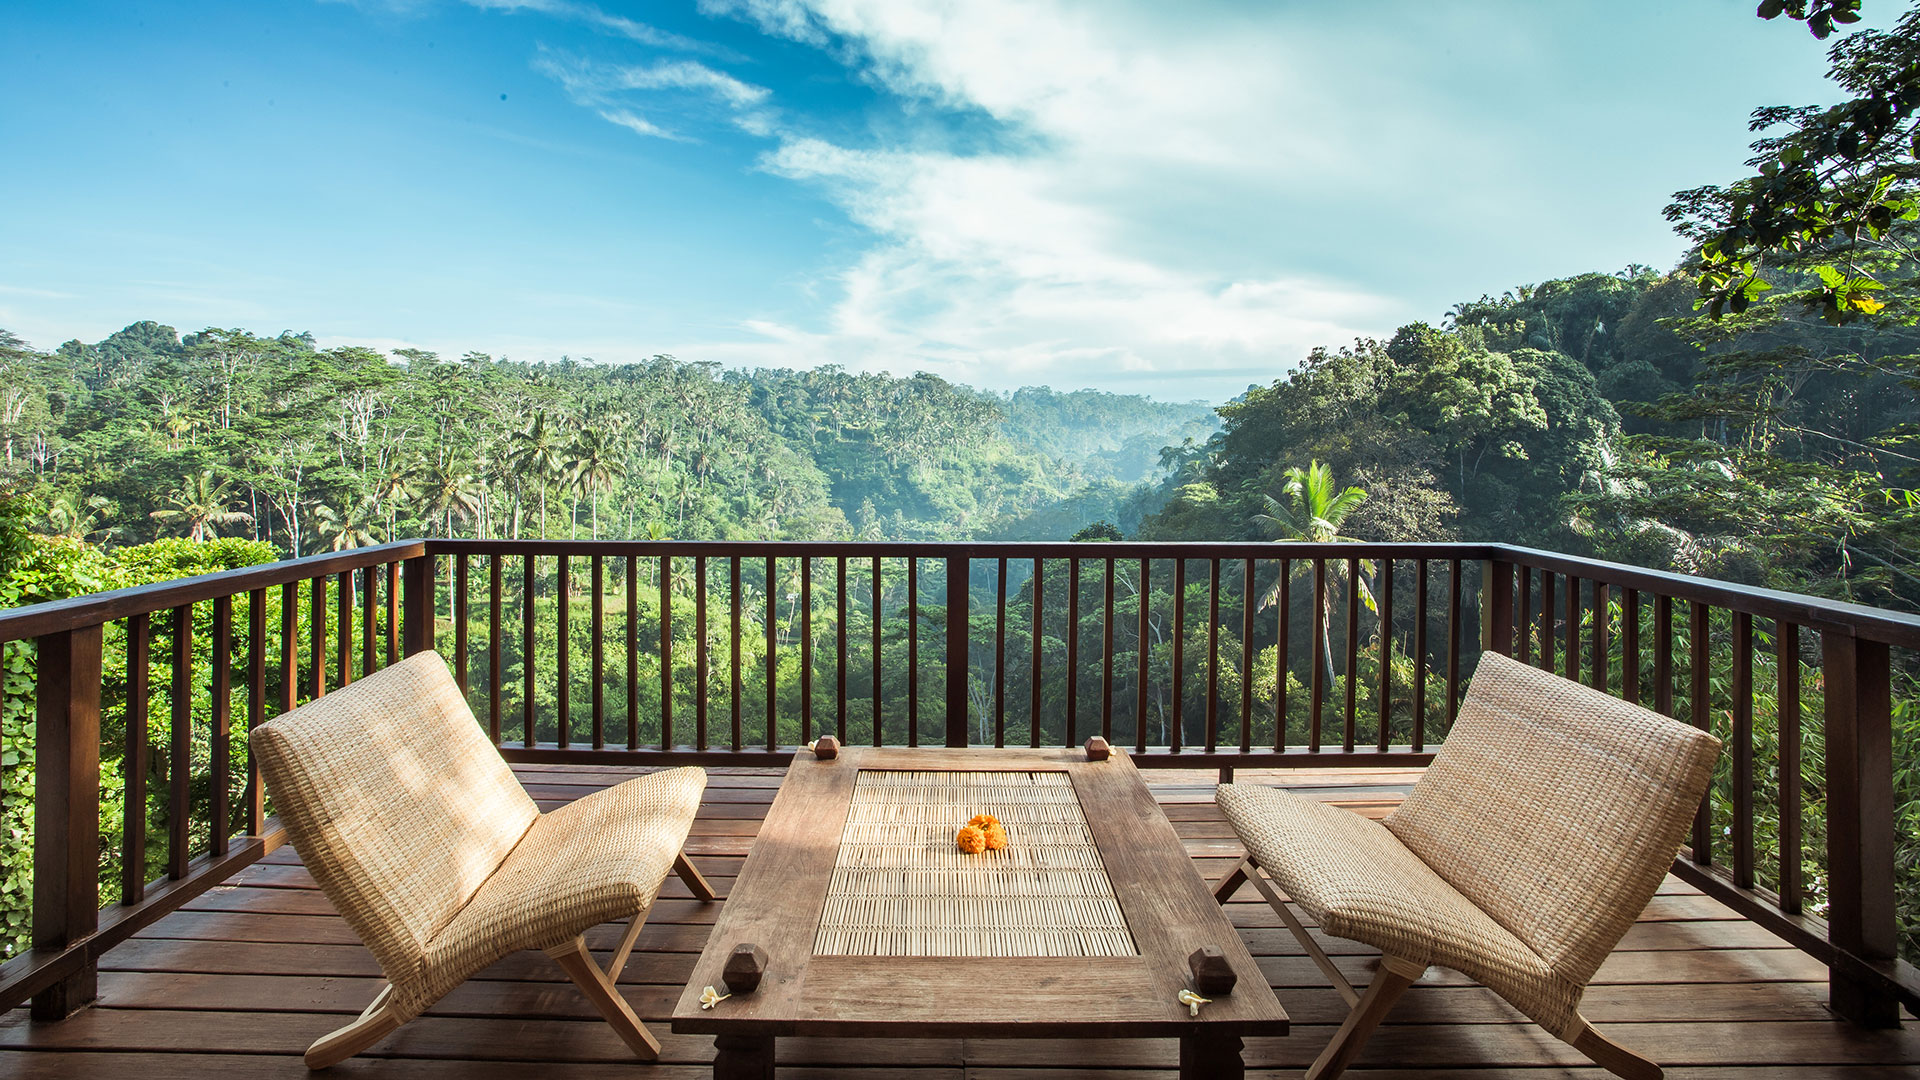 A classic villa with spectacular view located in Tegalalang, Ubud.